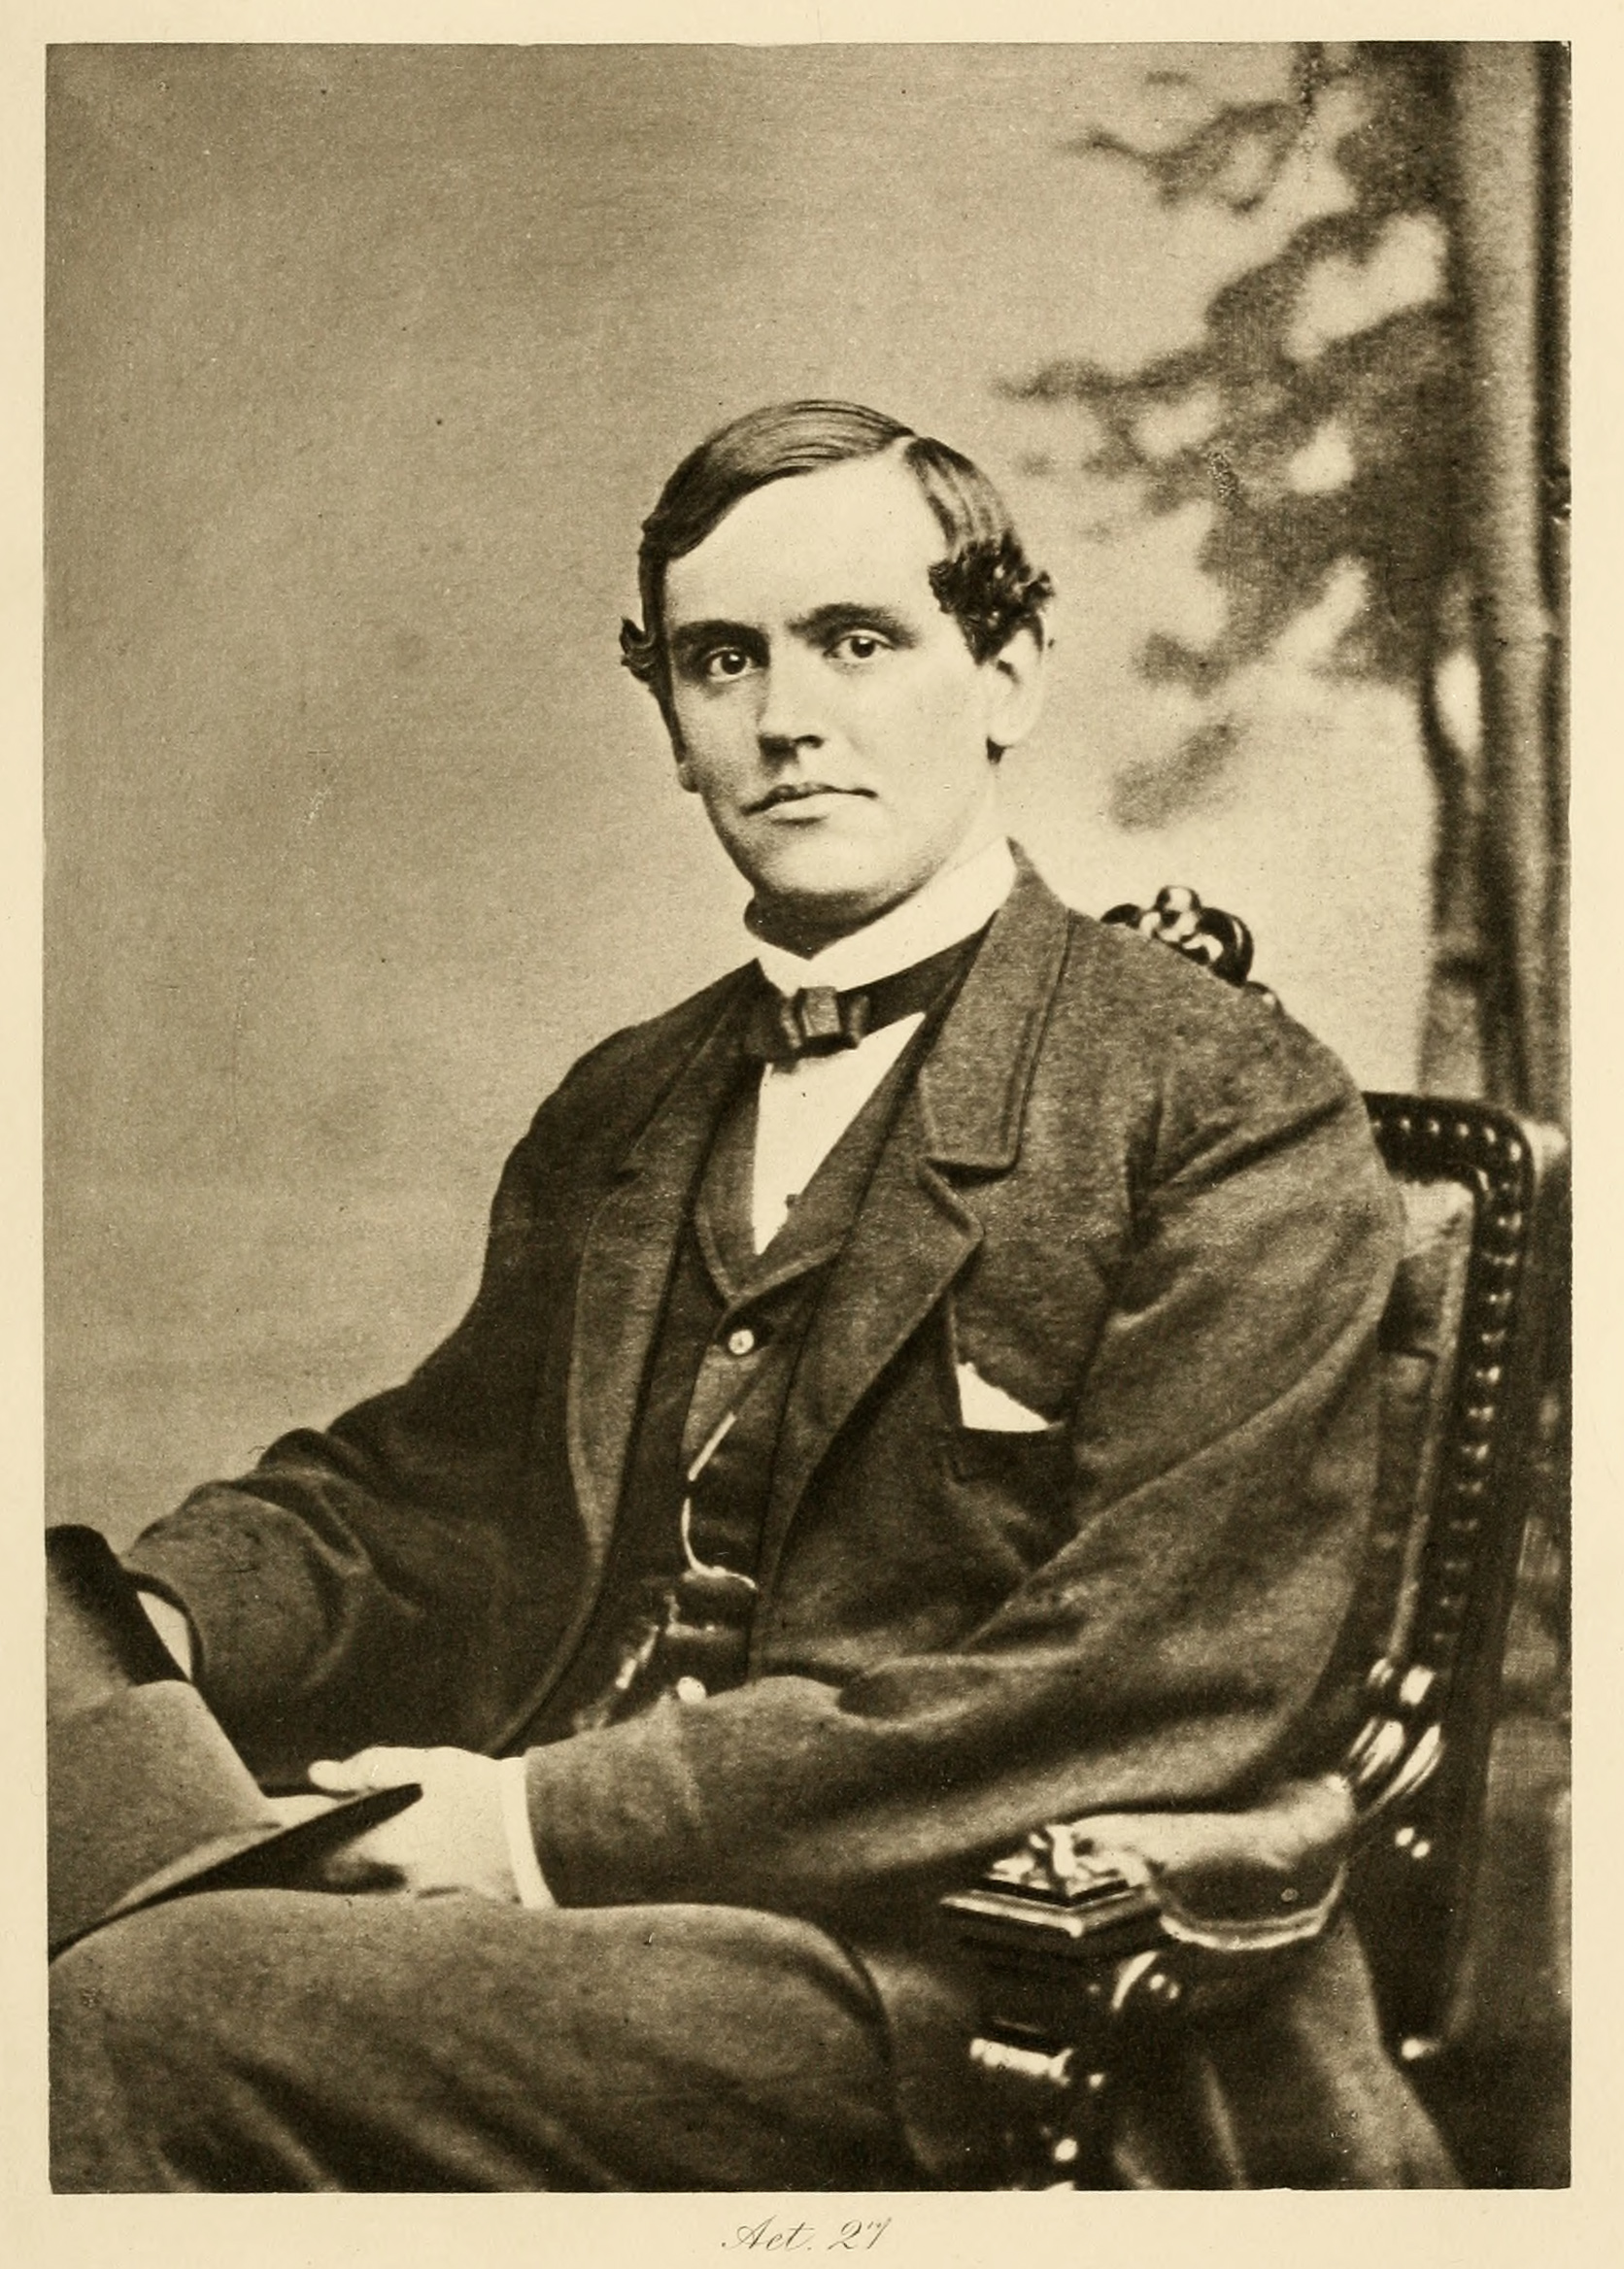 Phillips Brooks , age 27 (ca. 1862-63), photo by J.W. Black, in  Life and Letters of Phillips Brooks , vol. 1 (NY: E.P. Dutton, 1900).